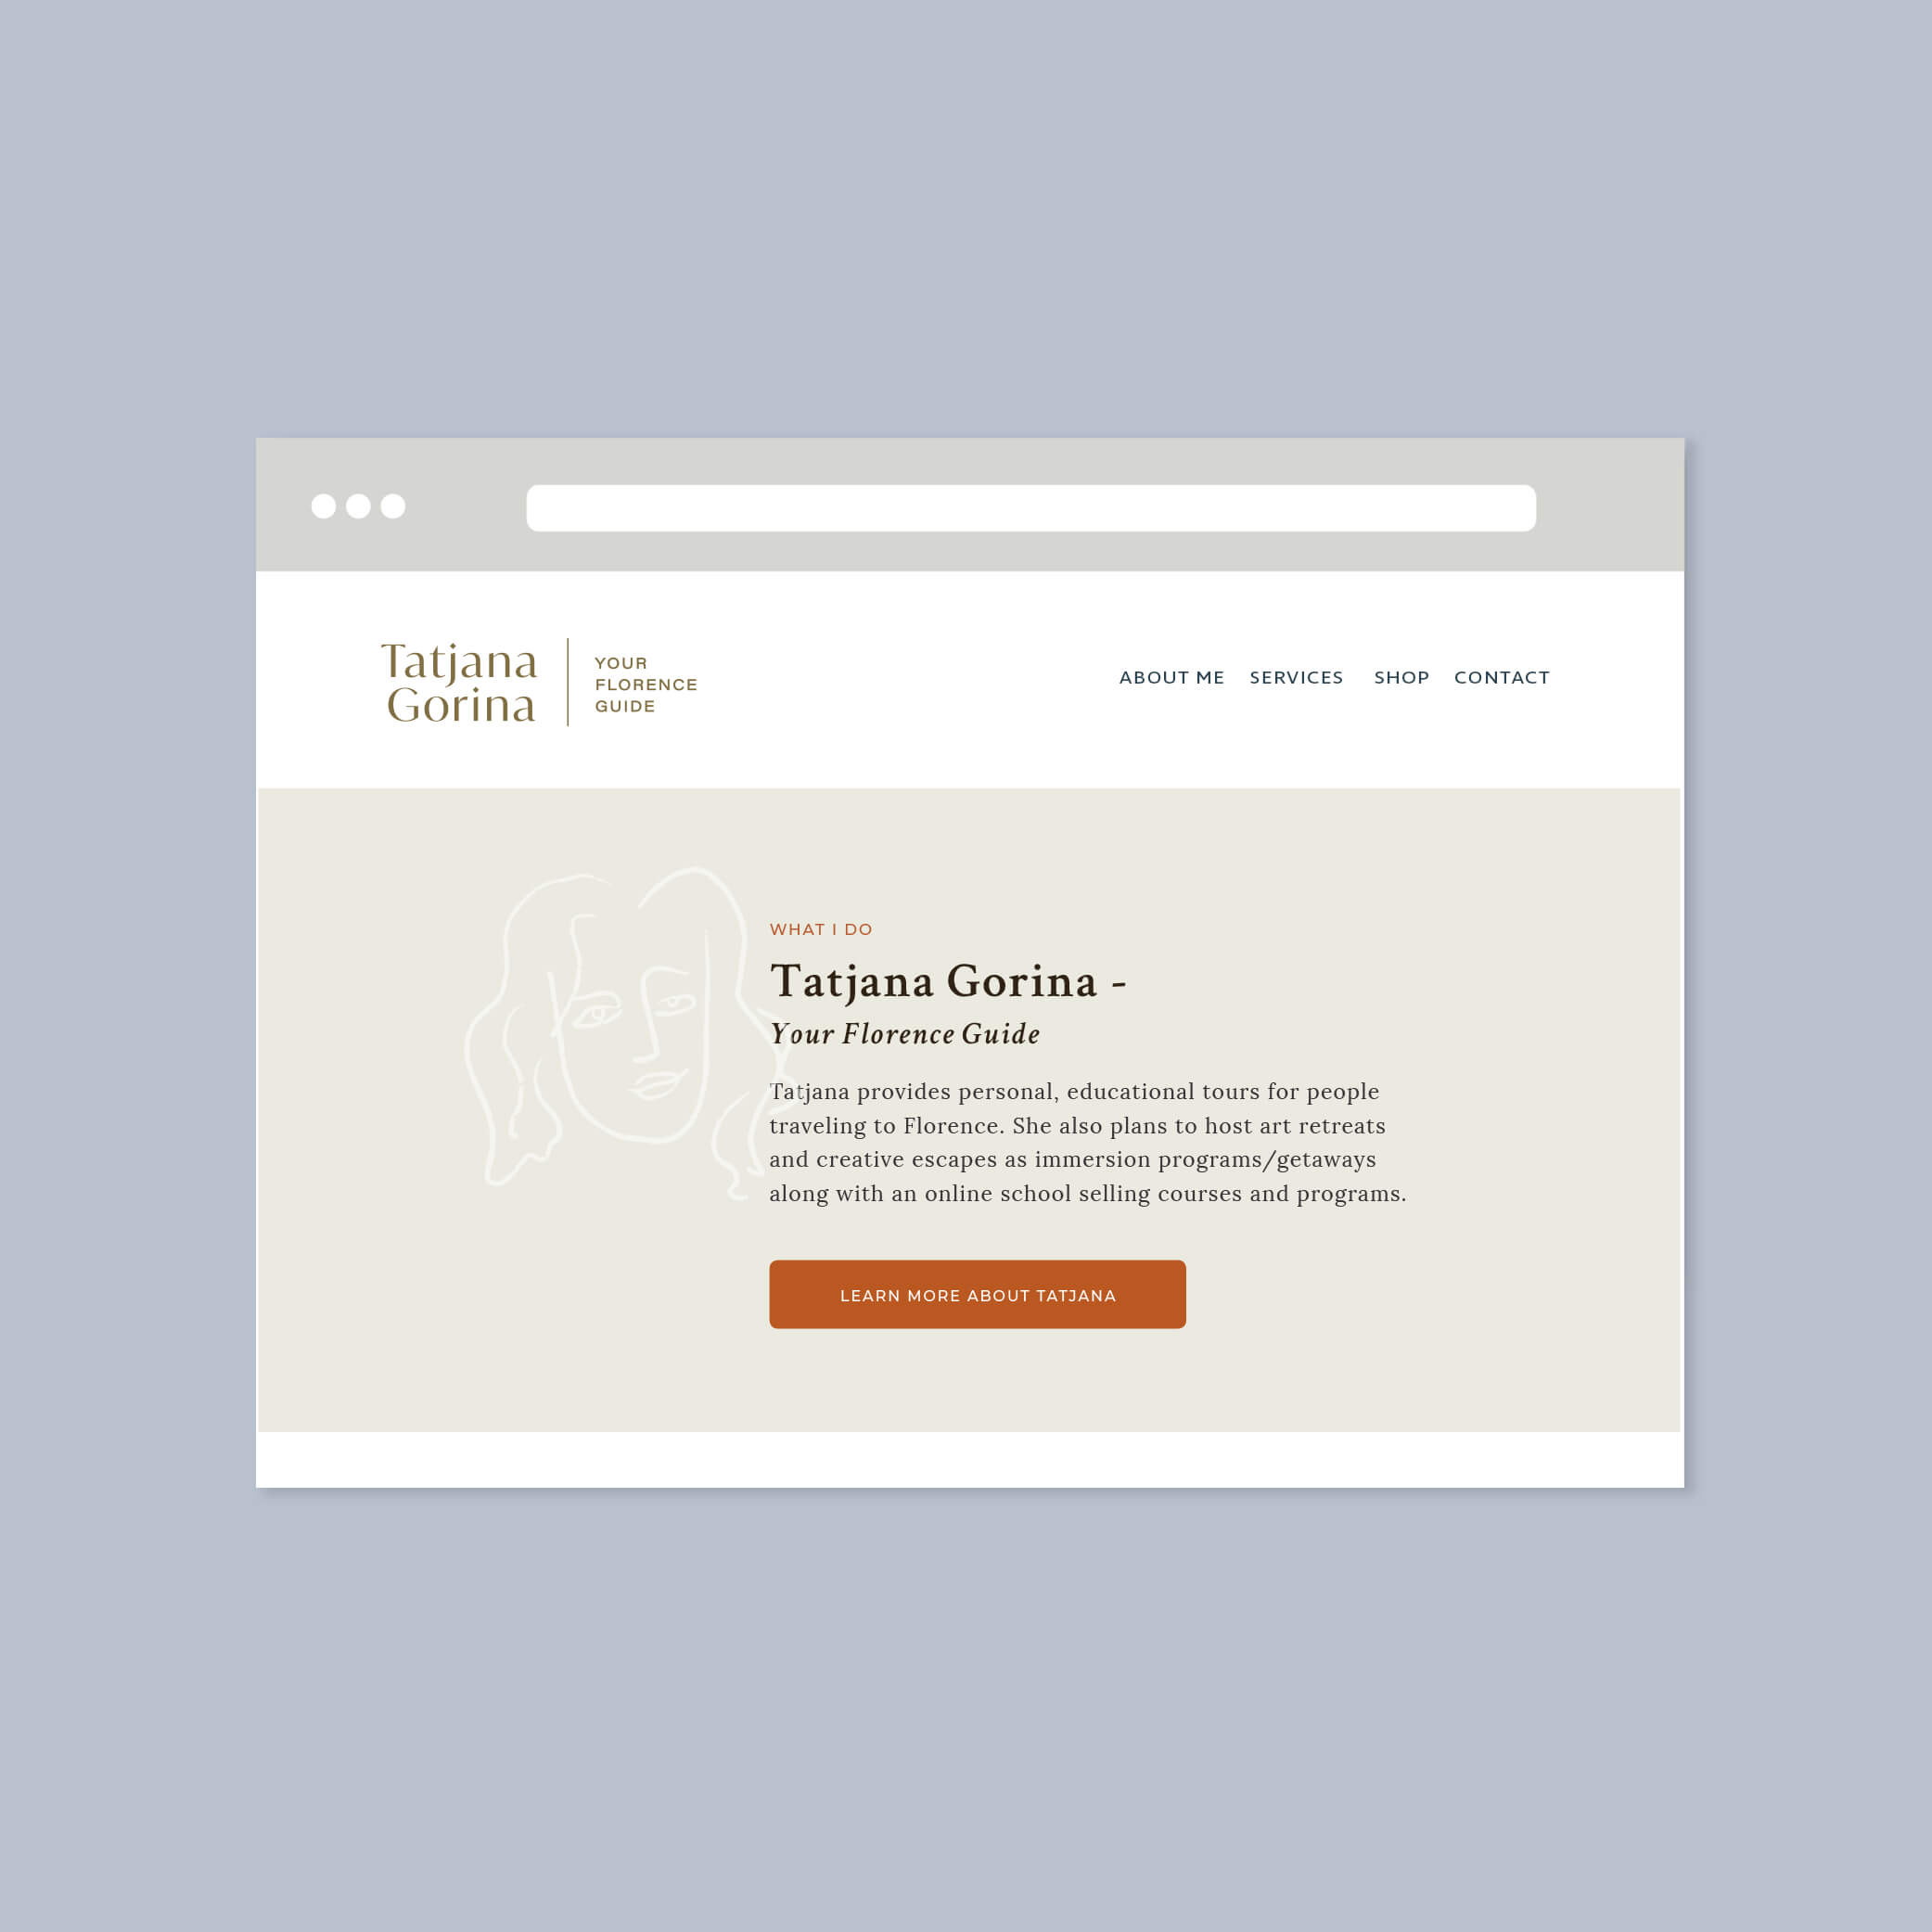 tatjana gorina your florence guide logo brand design